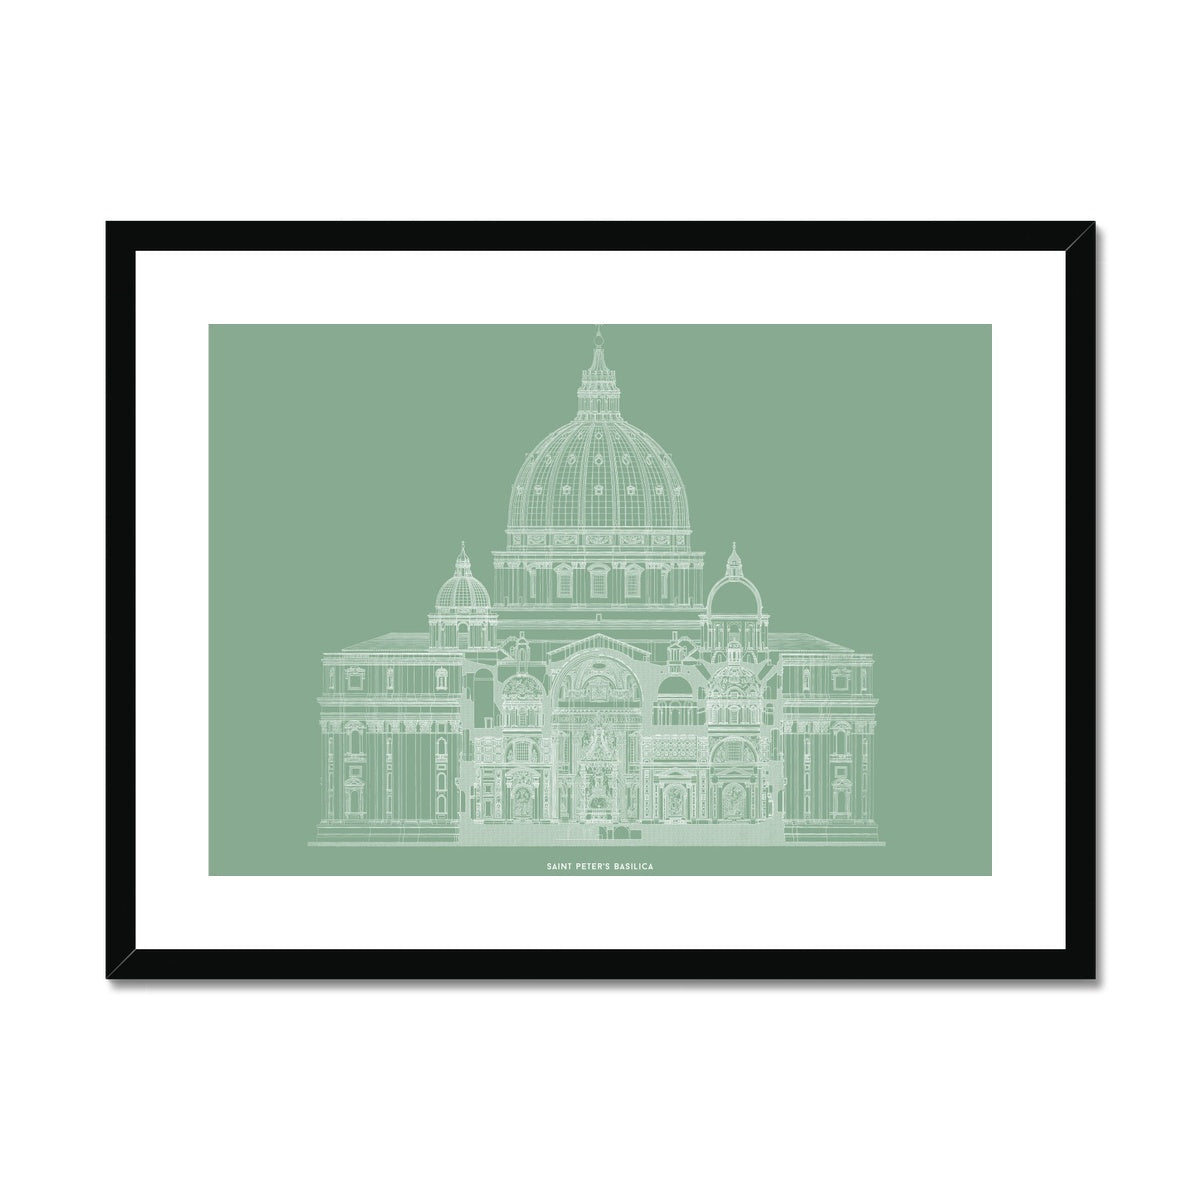 Saint Peter's Basilica - Primary Elevation Cross Section - Green -  Framed & Mounted Print